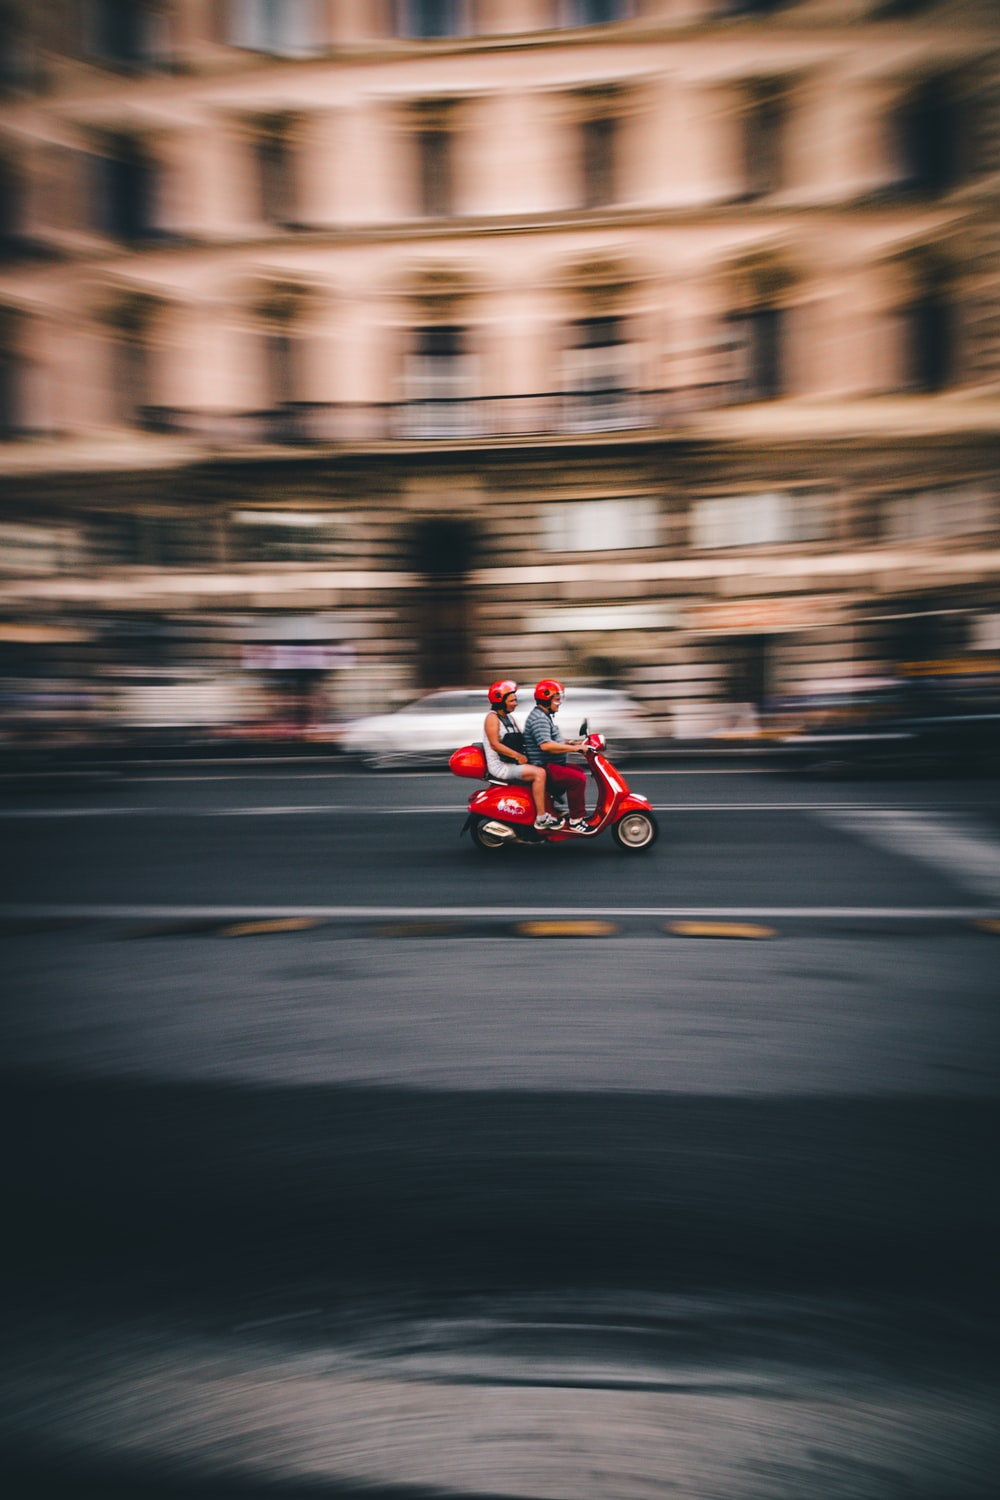 panning photography of two person riding red motor scooter